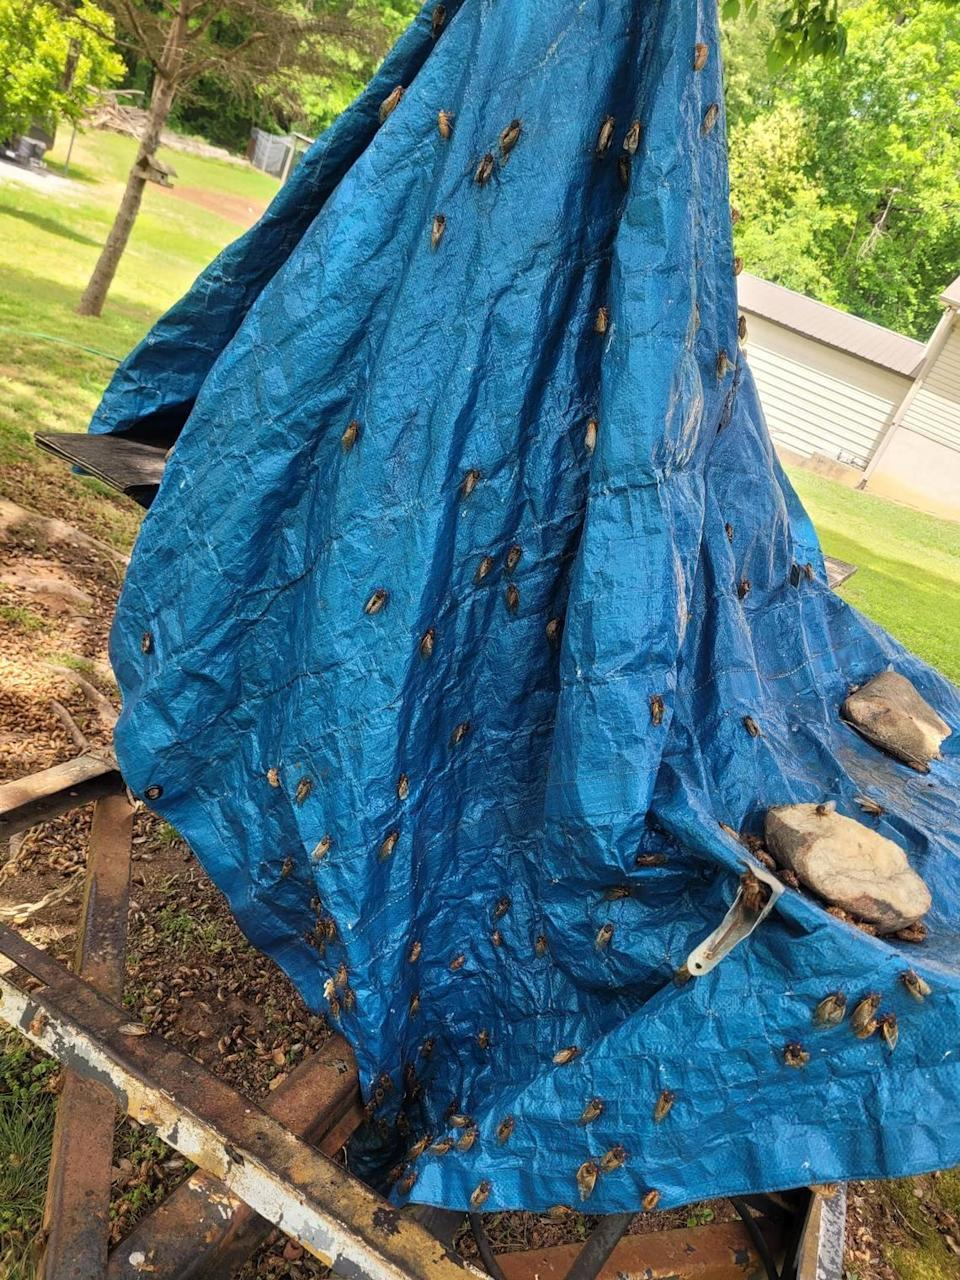 Brood X cicadas have taken over a blue tarp Donya Broda's husband uses to cover his smoker in the backyard of their Wilkesboro home.